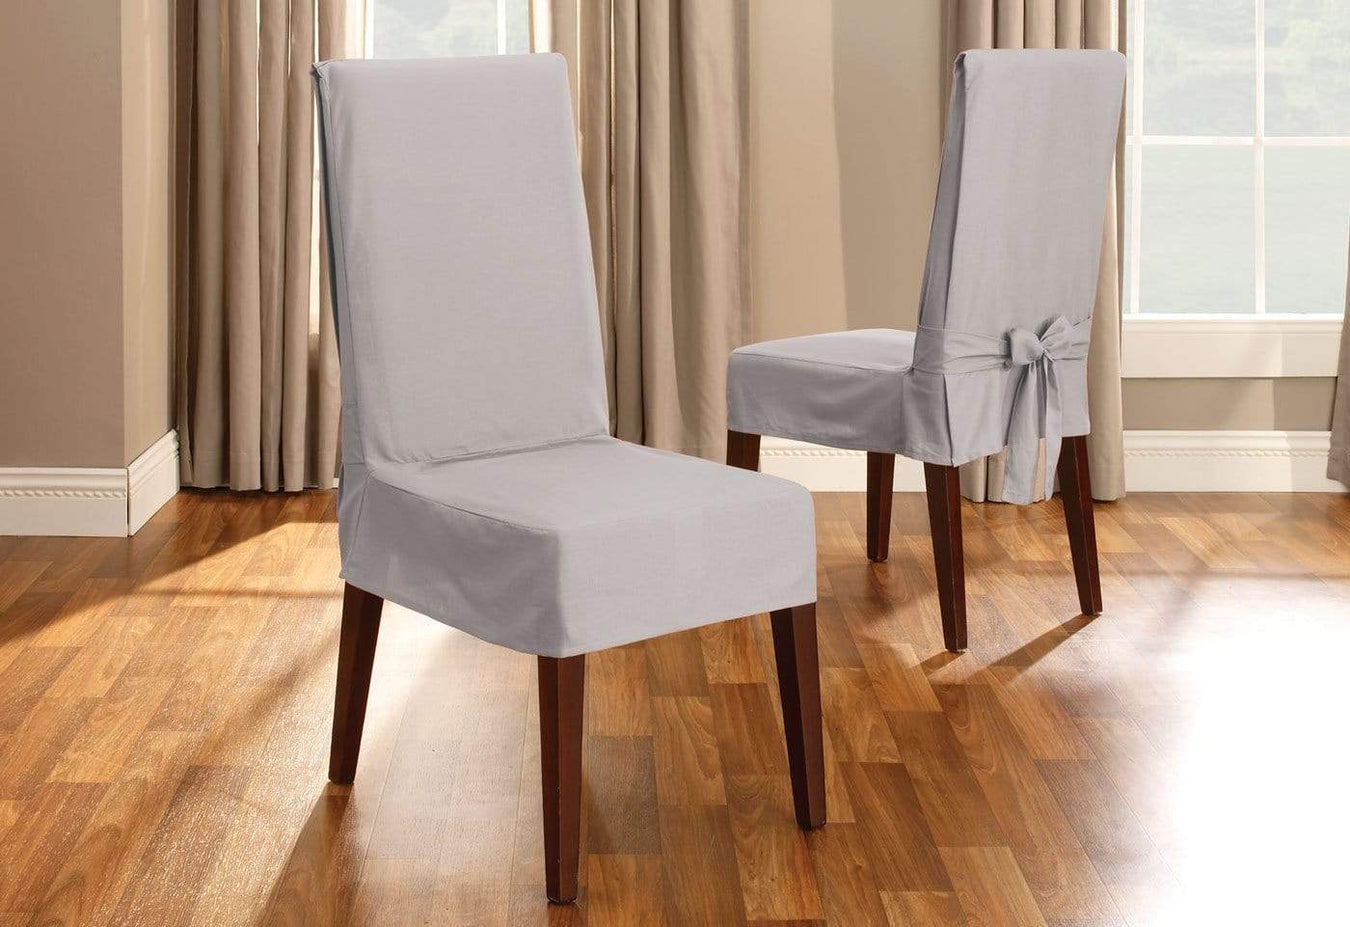 Surprising Cotton Duck Short Dining Chair Slipcover Slipcovers For Cjindustries Chair Design For Home Cjindustriesco